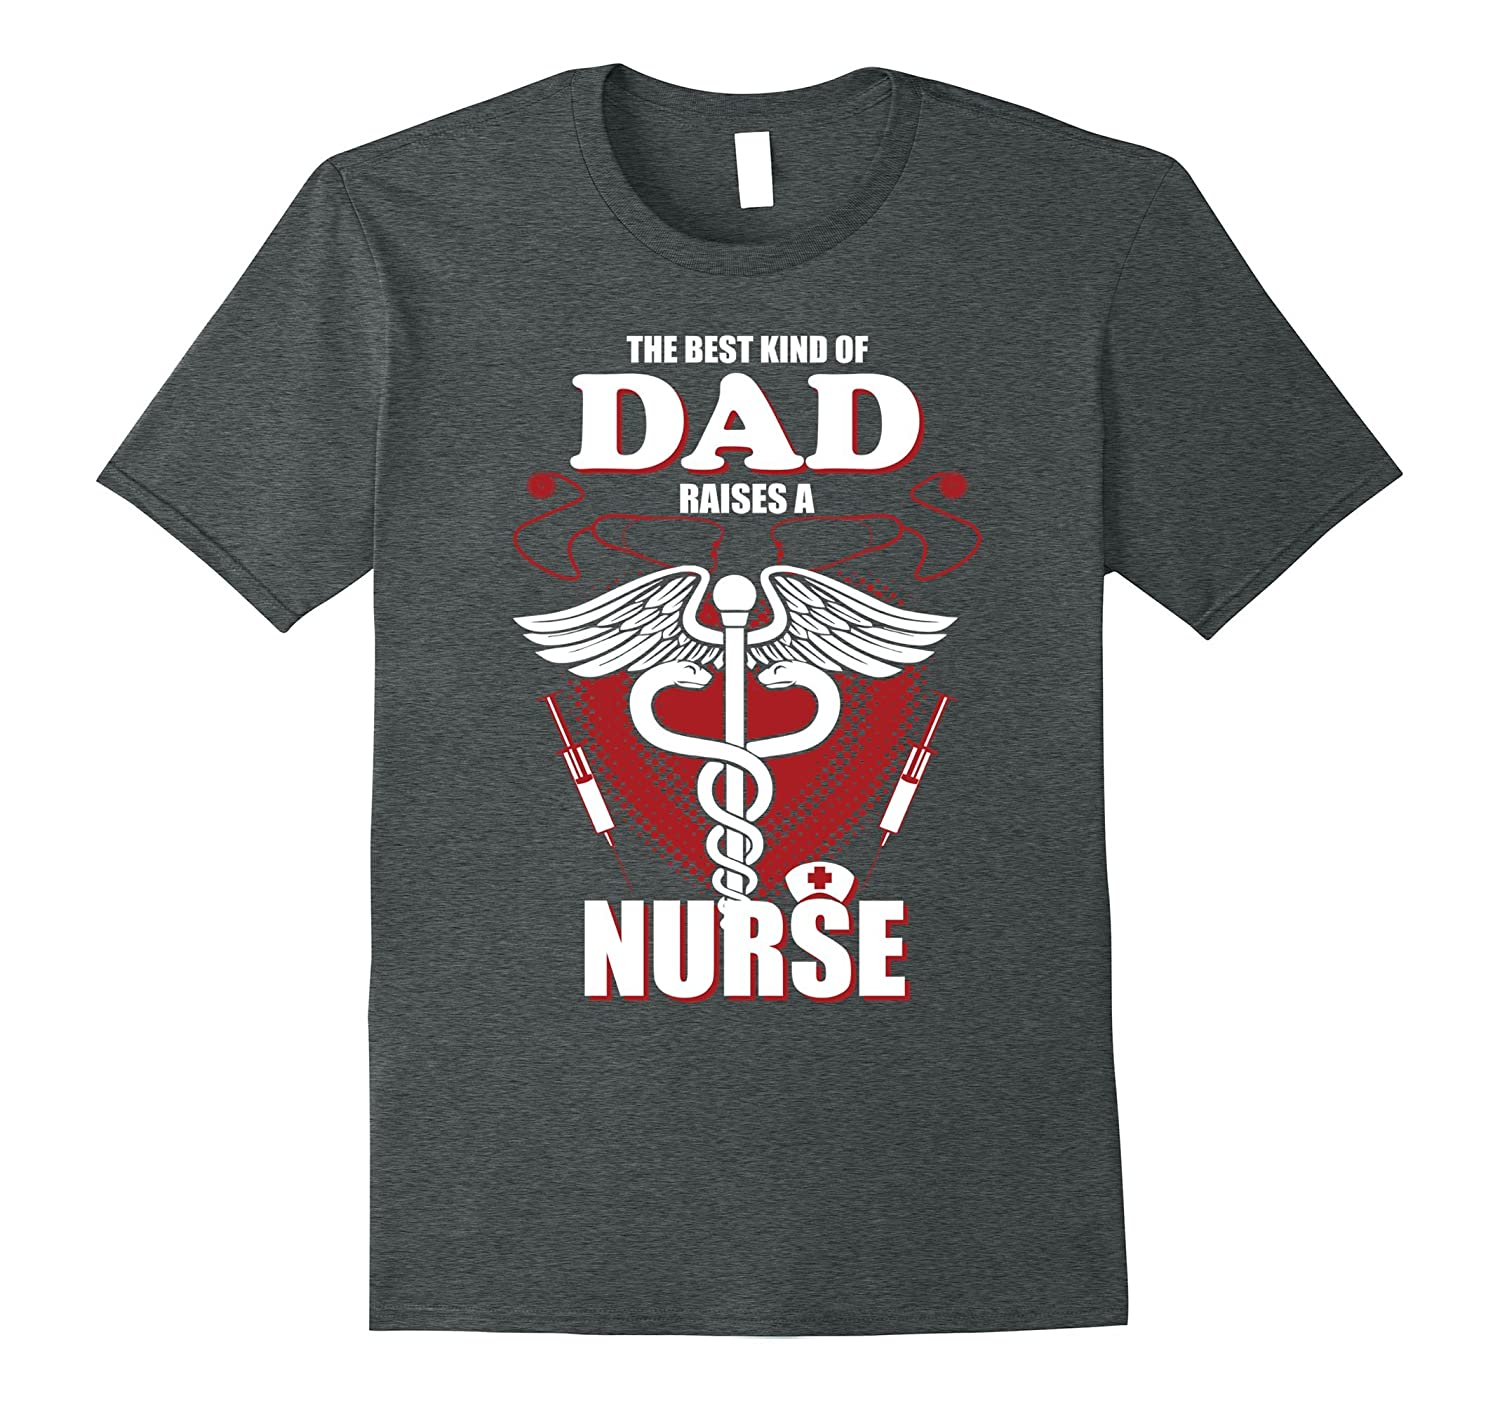 The Best Kind Of Dad Raises A Nurse Shirts Fathers Day Gifts